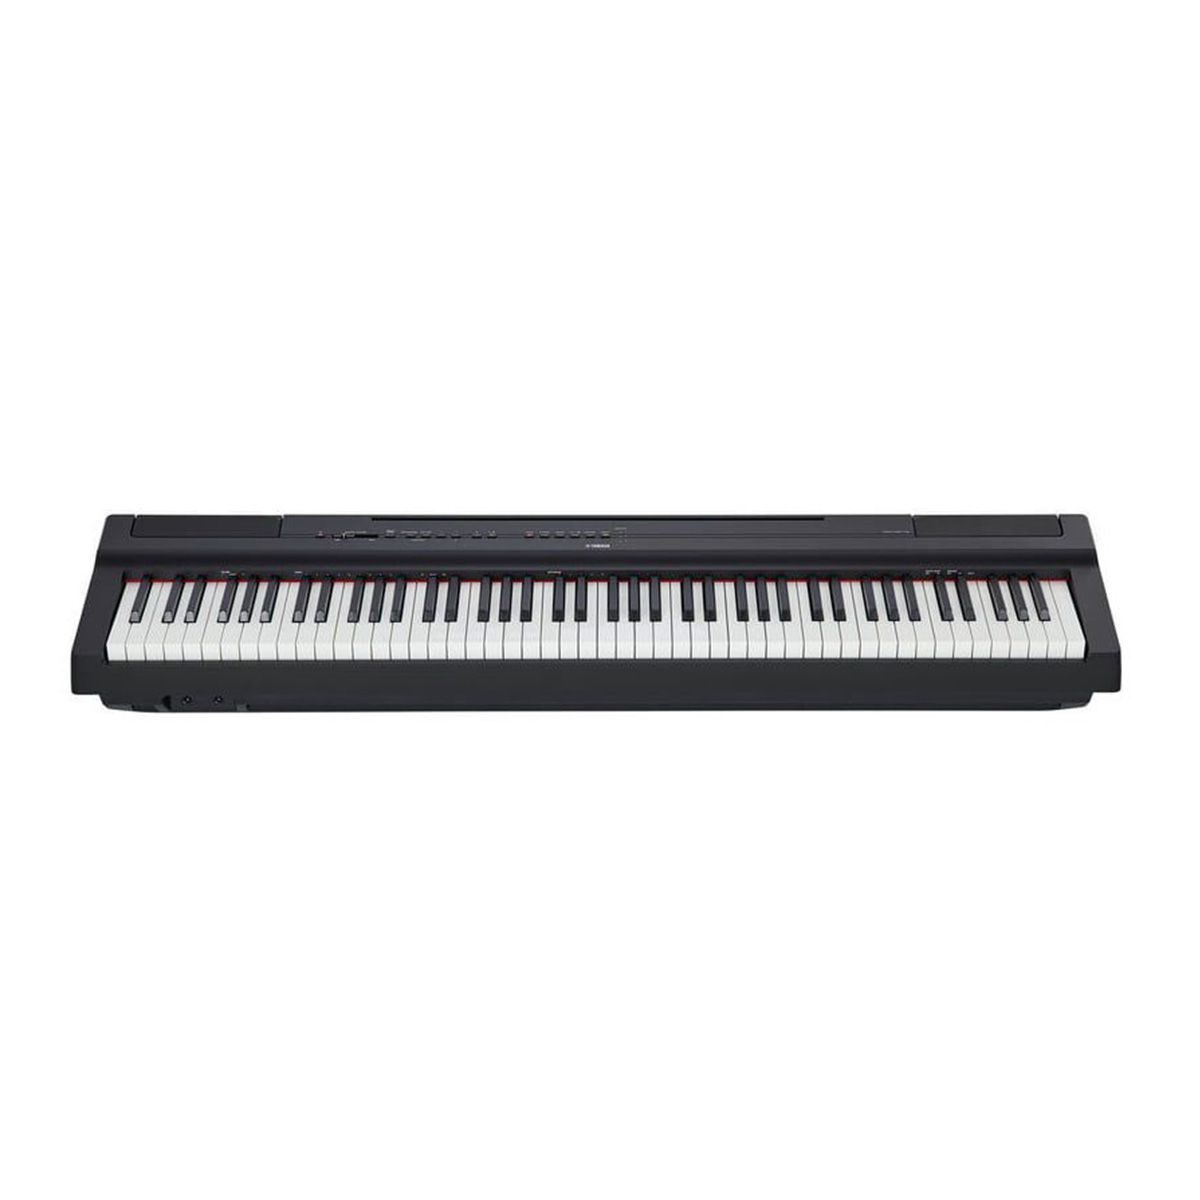 Piano Digital Yamaha P125 88 Teclas USB Black